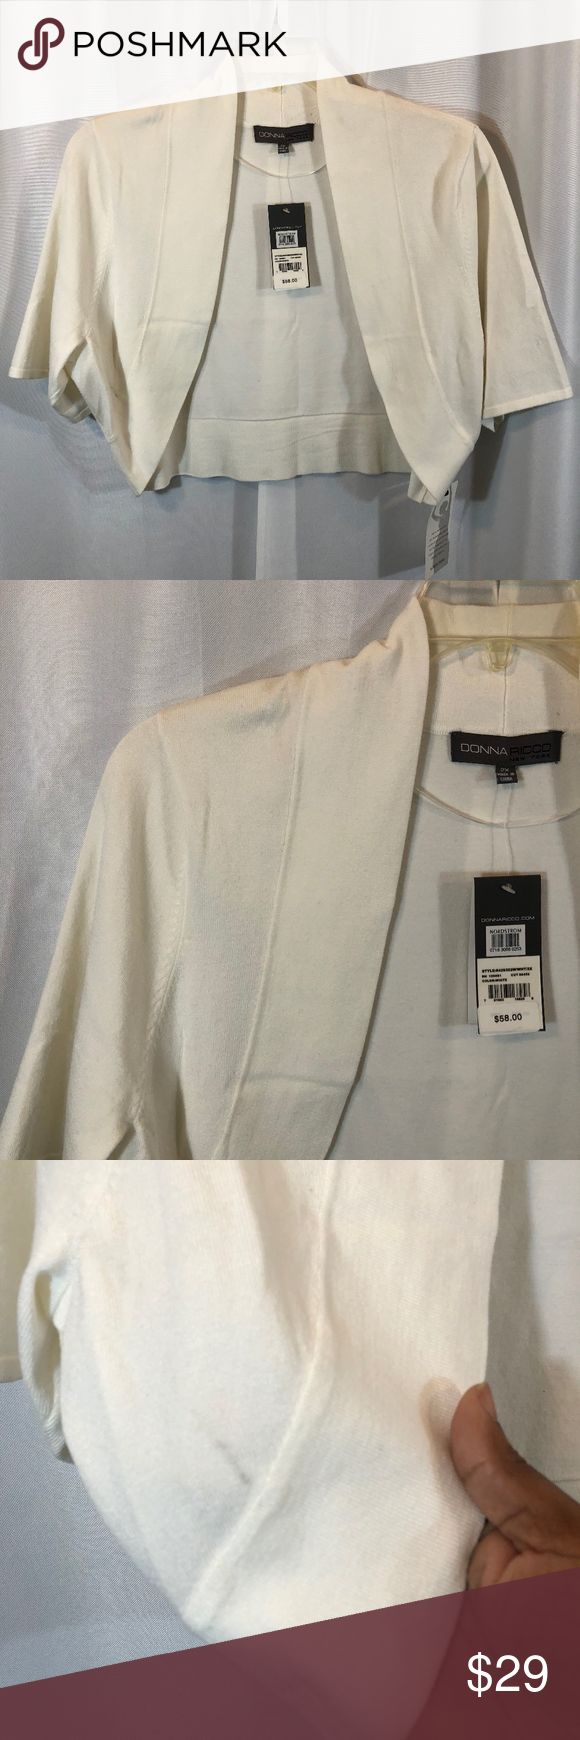 """Donna Ricco Ivory Shrug/Bolero Sweater, Size 2X NOTE: There is a small mark grayish-black on the sweater as shown in the photos.  Brand: Donna Ricco Size: 2X Material: 70% Rayon, 30% Nylon Condition: Brand new with tags   Approx. Measurements   Bust: 46""""  Length: 18"""" Donna Ricco Sweaters Shrugs & Ponchos"""